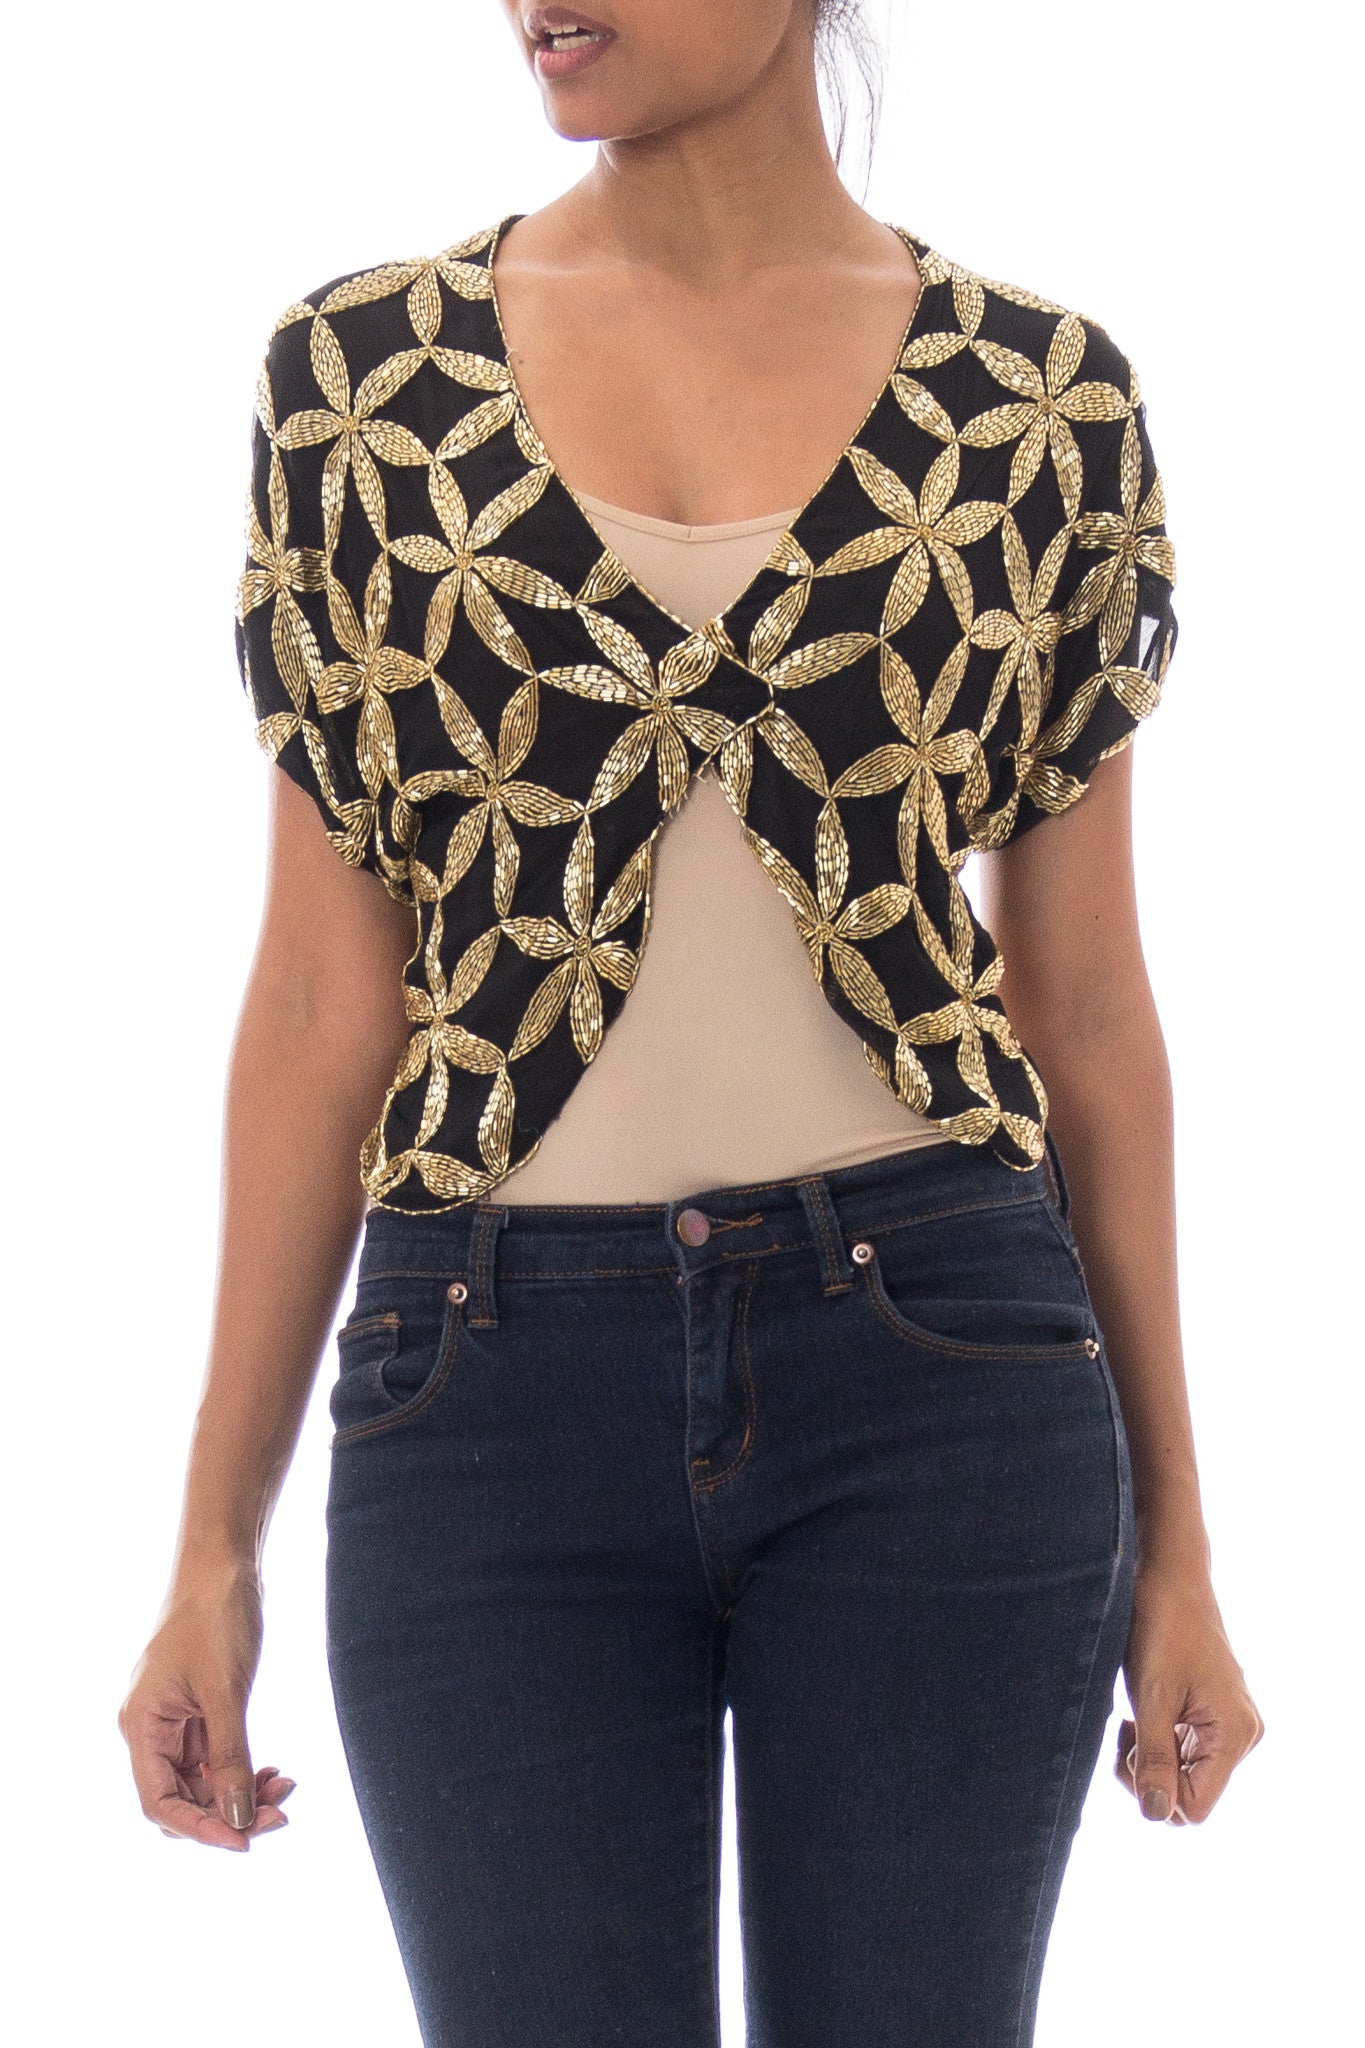 1980s Chiffon Gold Beaded Backless Tied Crop Top